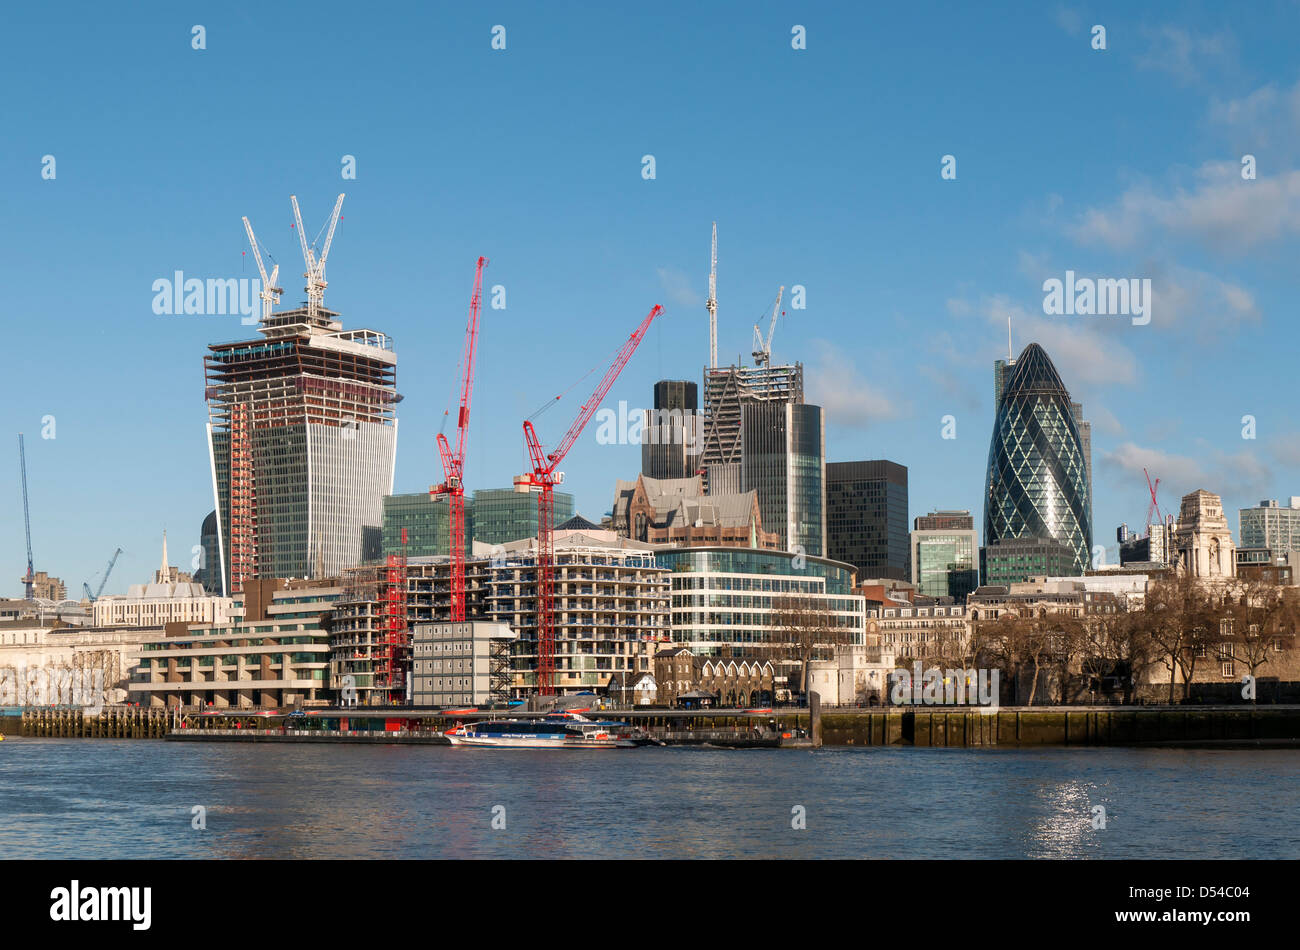 Construction of Skyscrapers, City of London (February 2013) - 20 Fenchurch St (Walkie-Talkie), 122 Leadenhall St - Stock Image